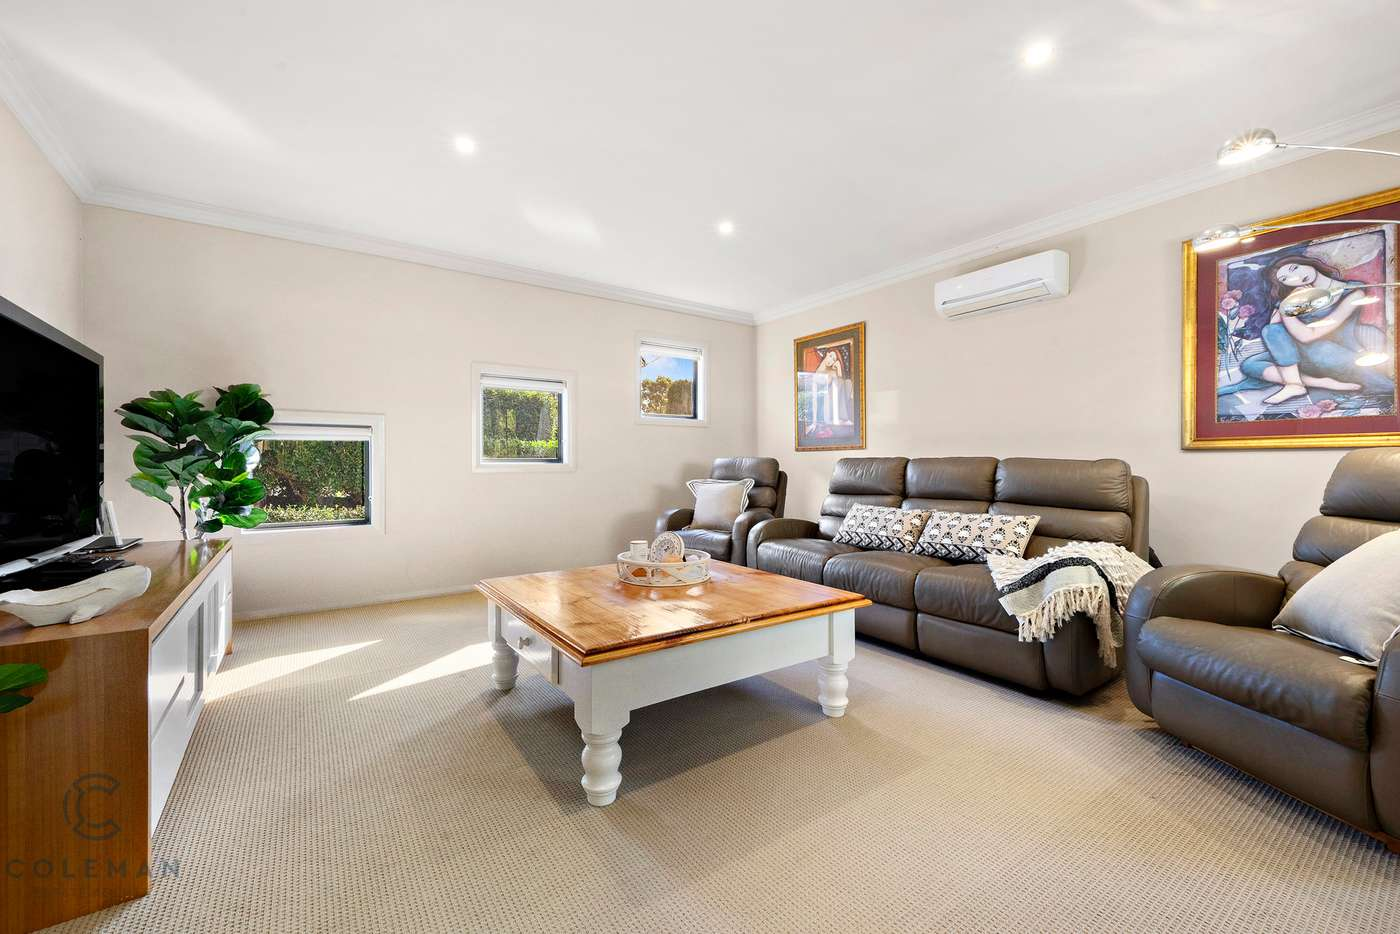 Fifth view of Homely house listing, 14 Illawong Road, Summerland Point NSW 2259